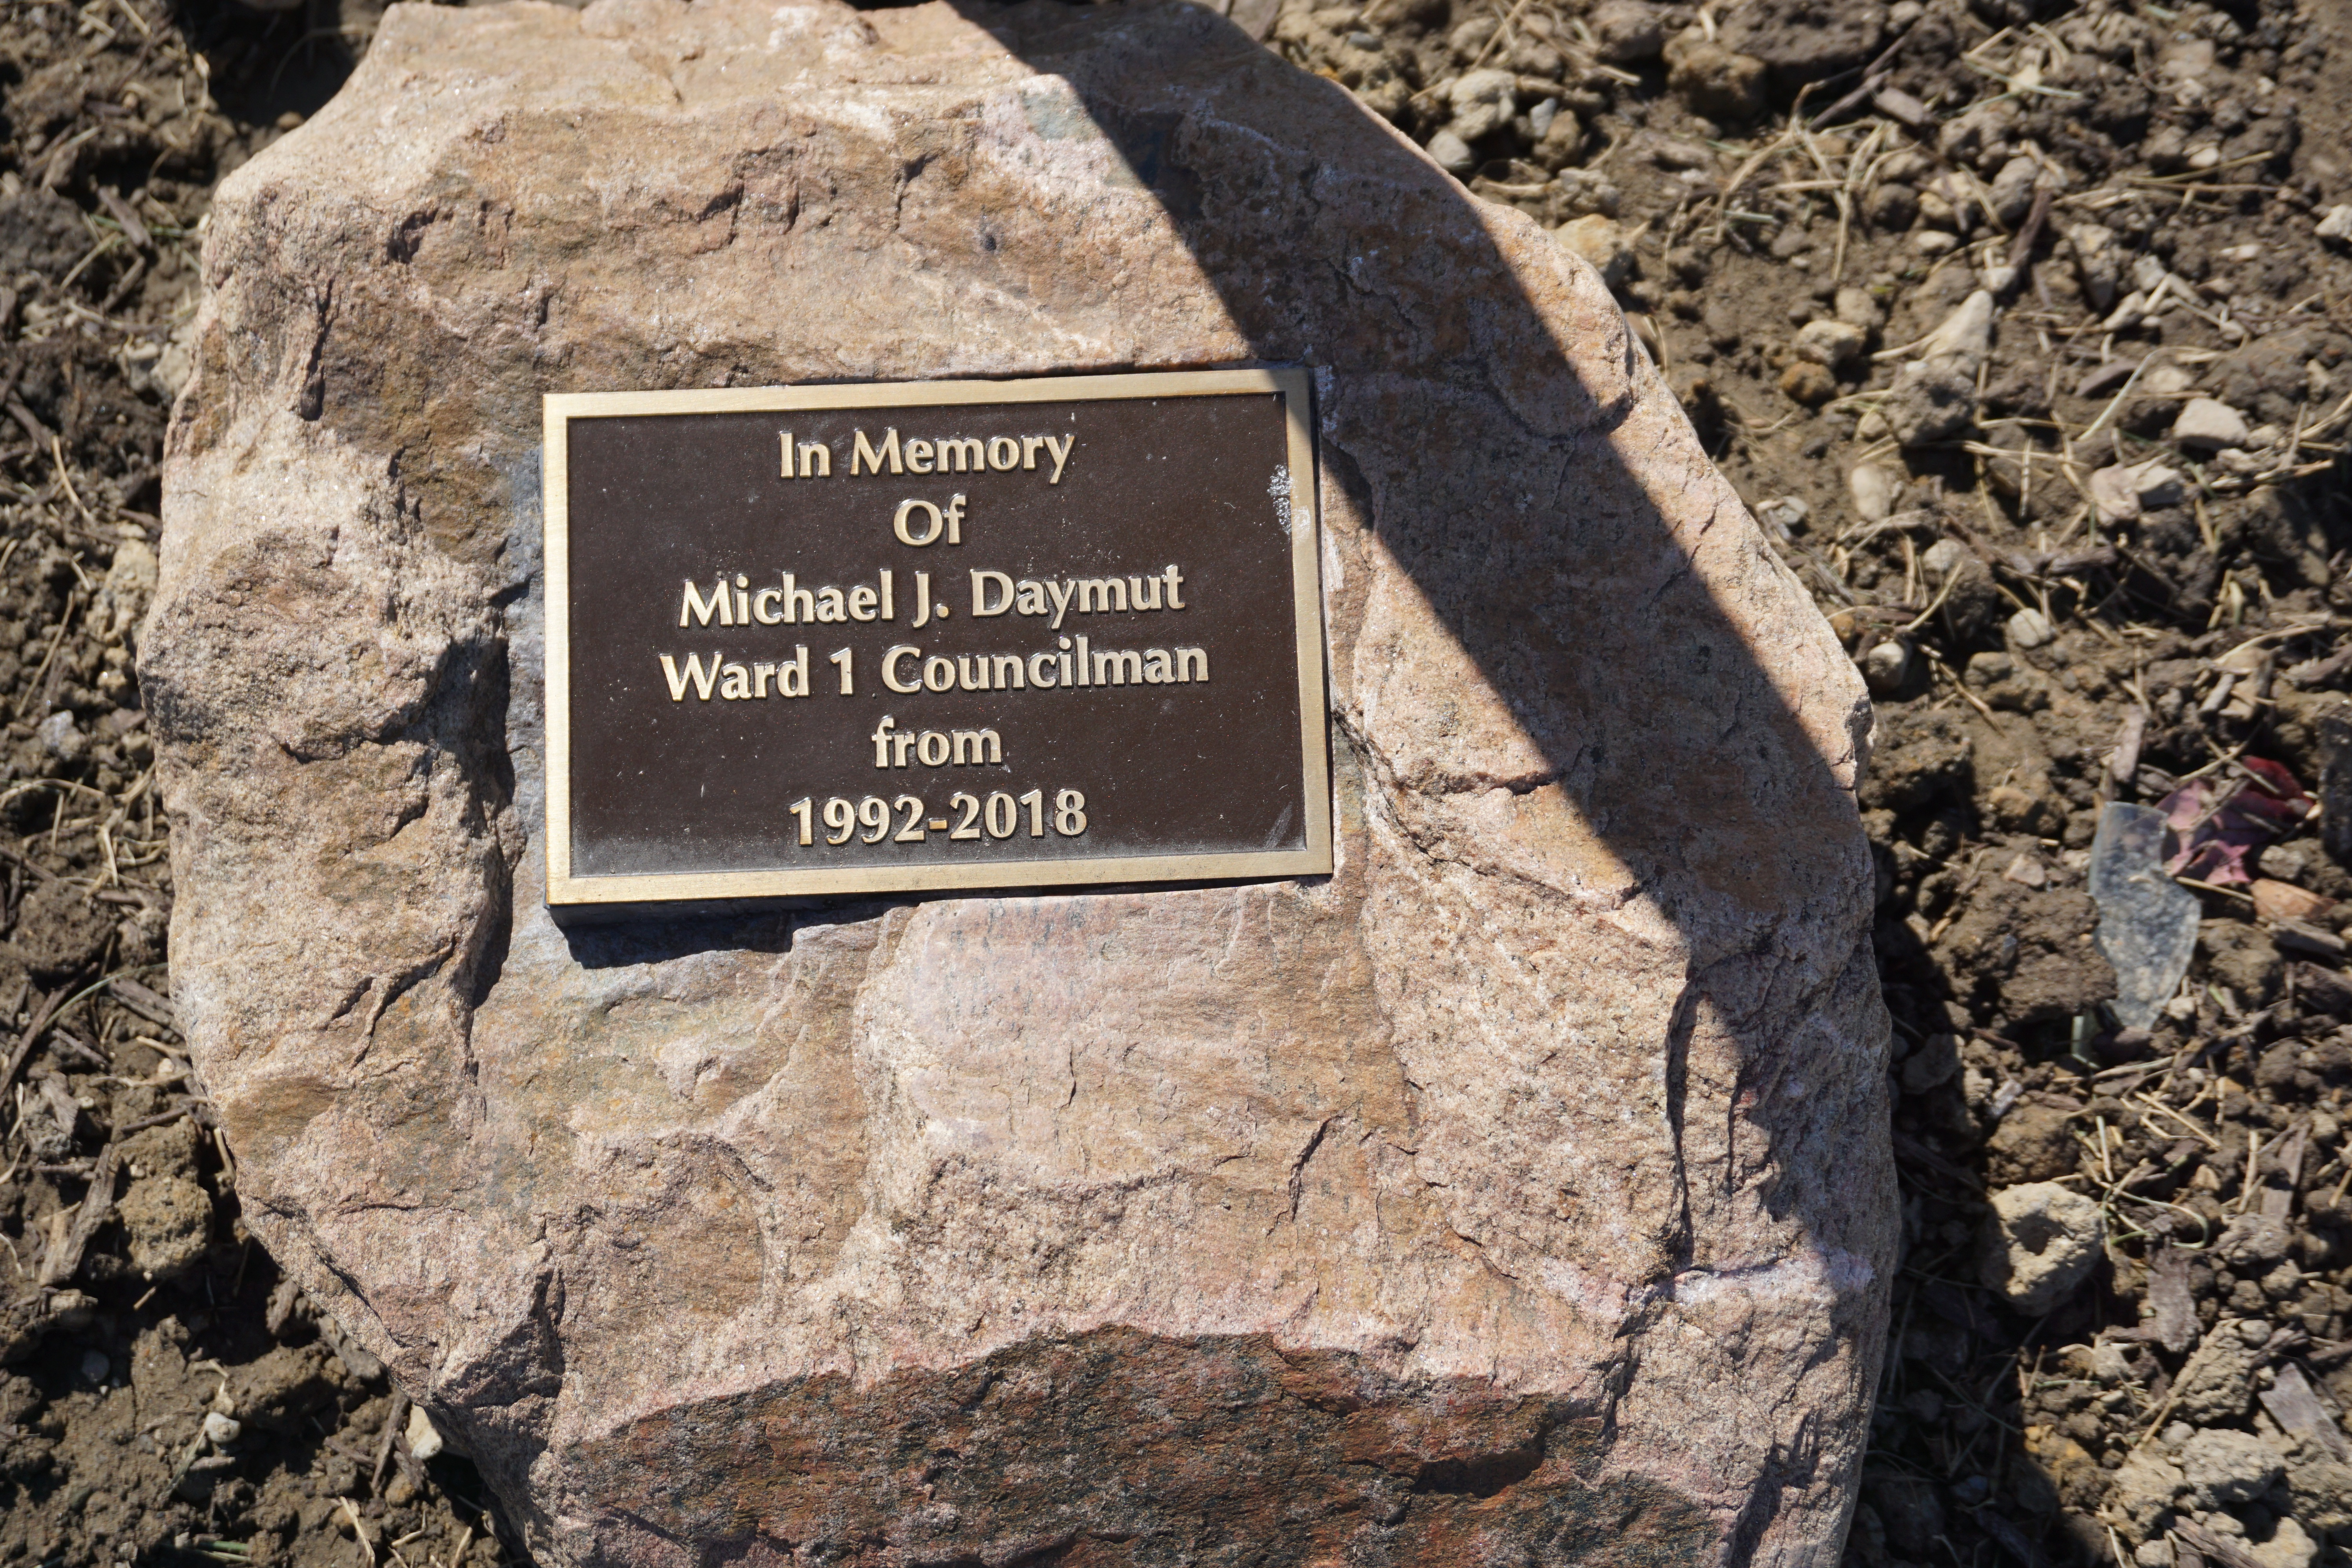 Memorial Honors Mike Daymut